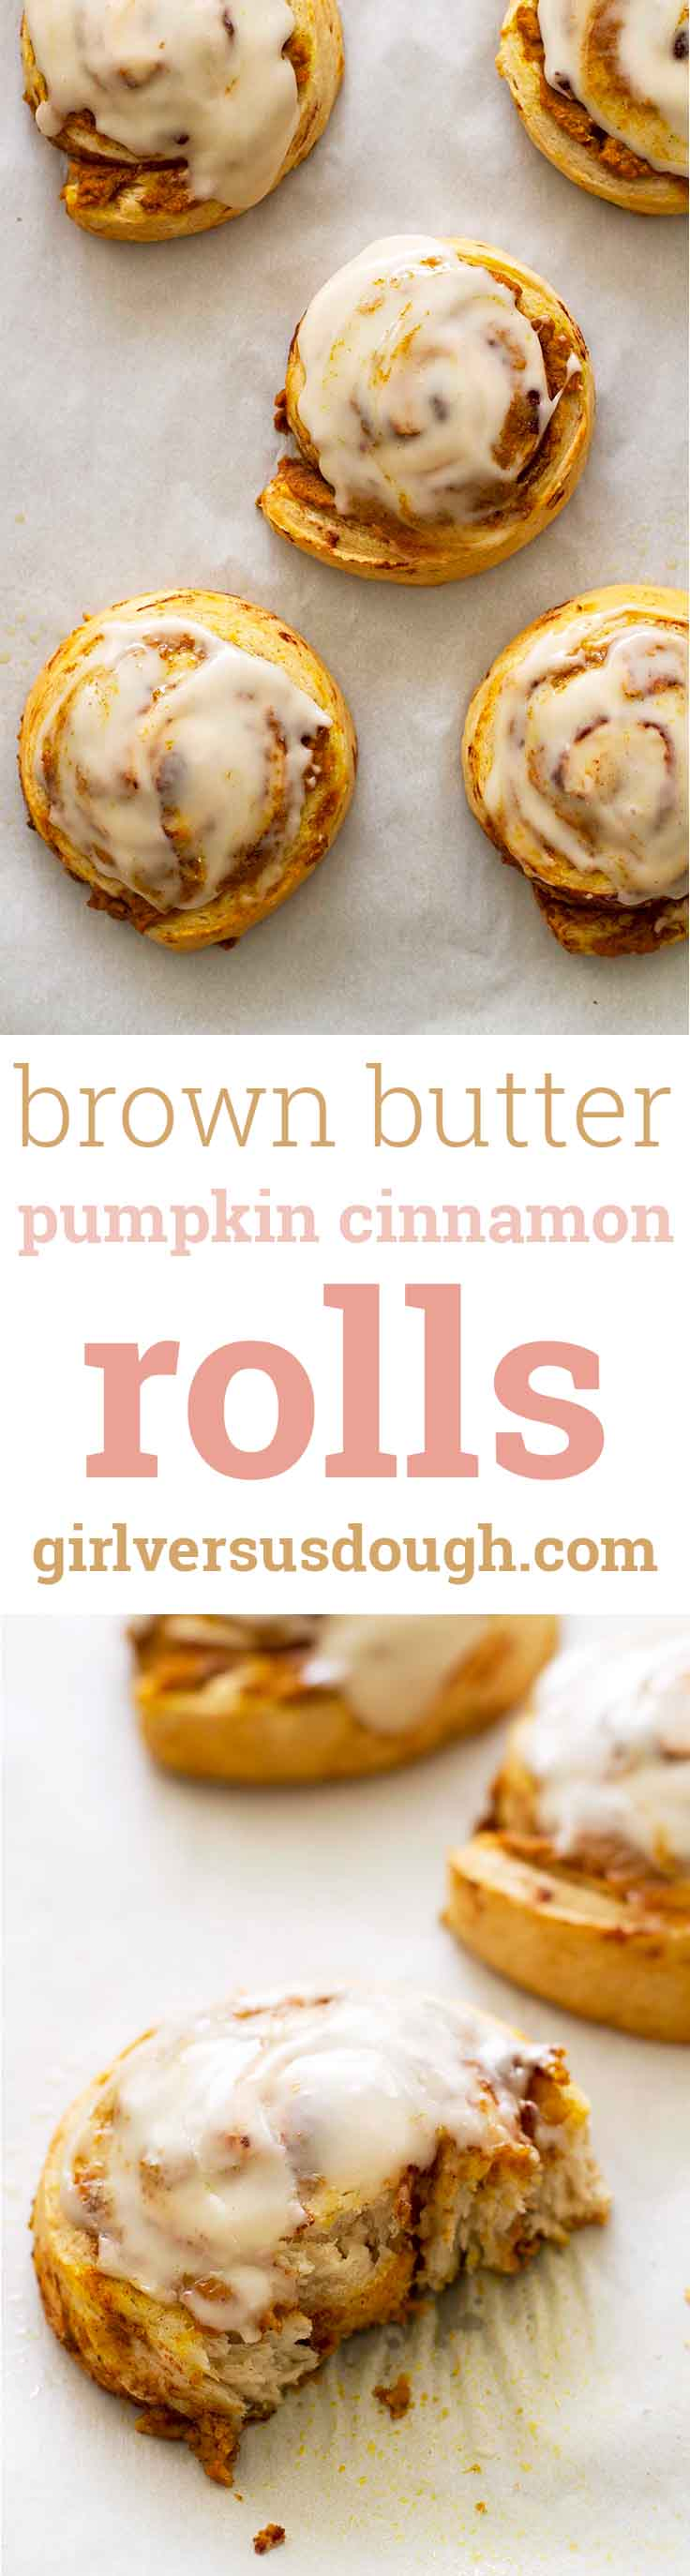 Brown Butter Pumpkin Cinnamon Rolls -- Just four ingredients make these pumpkin pie-flavored cinnamon rolls easy and delicious! girlversusdough.com @girlversusdough